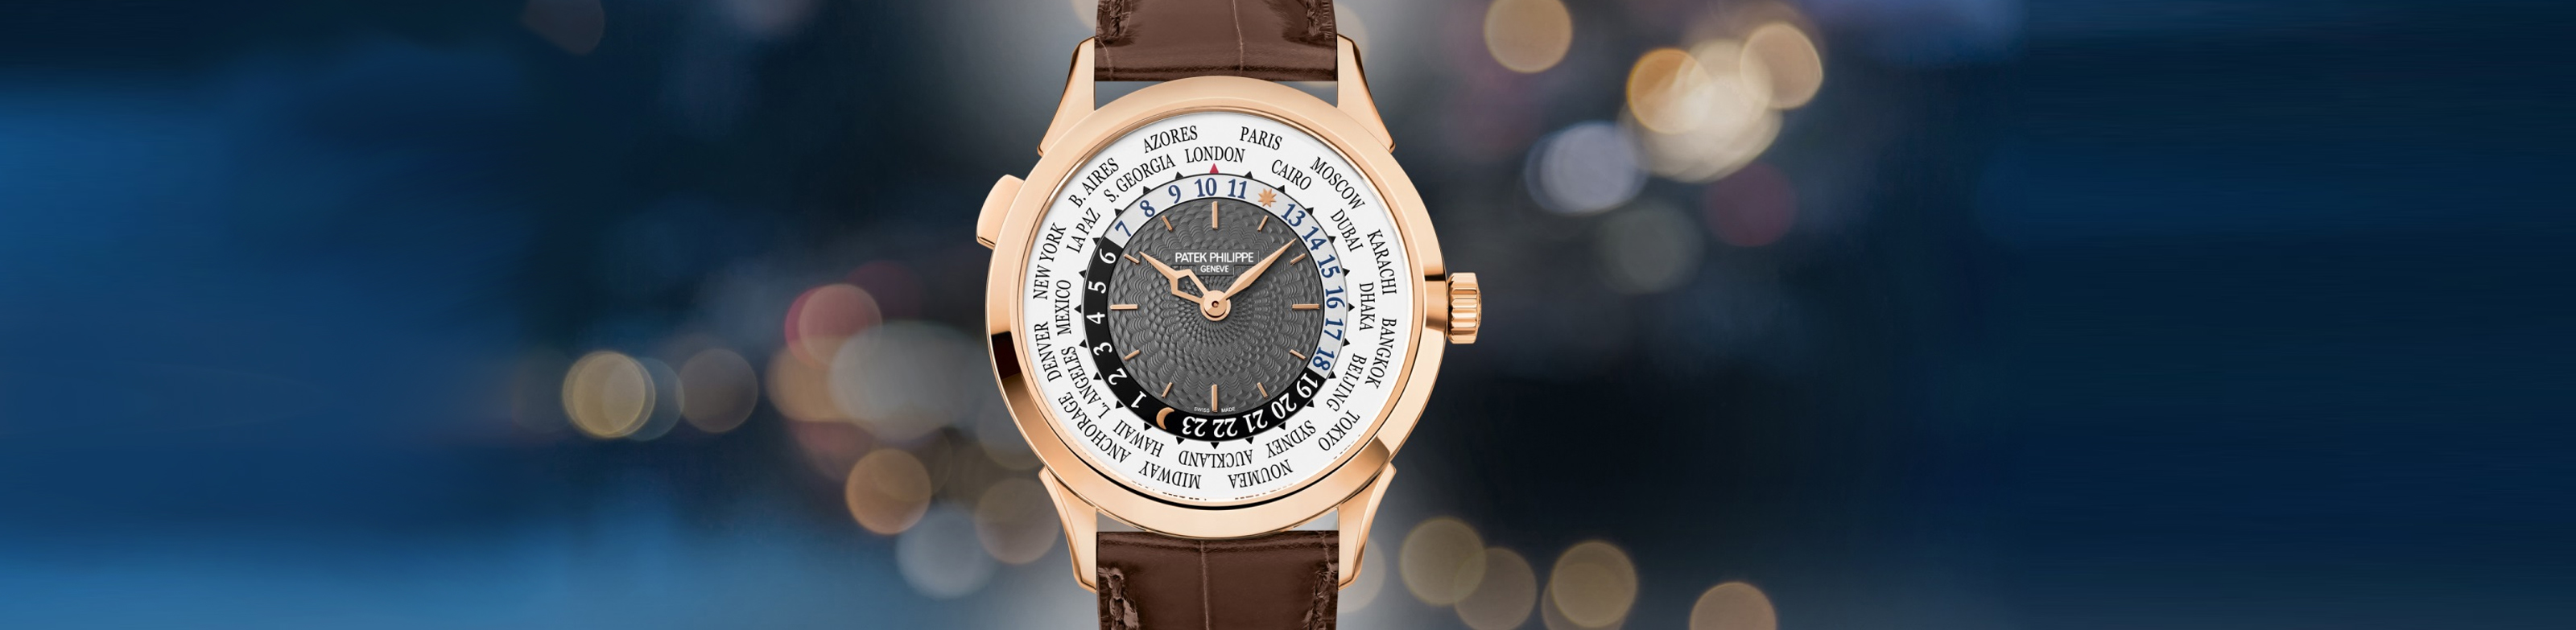 NEW PATEK PHILLIPPE ARRIVALS - AUGUST 2020 NEWS article hero image